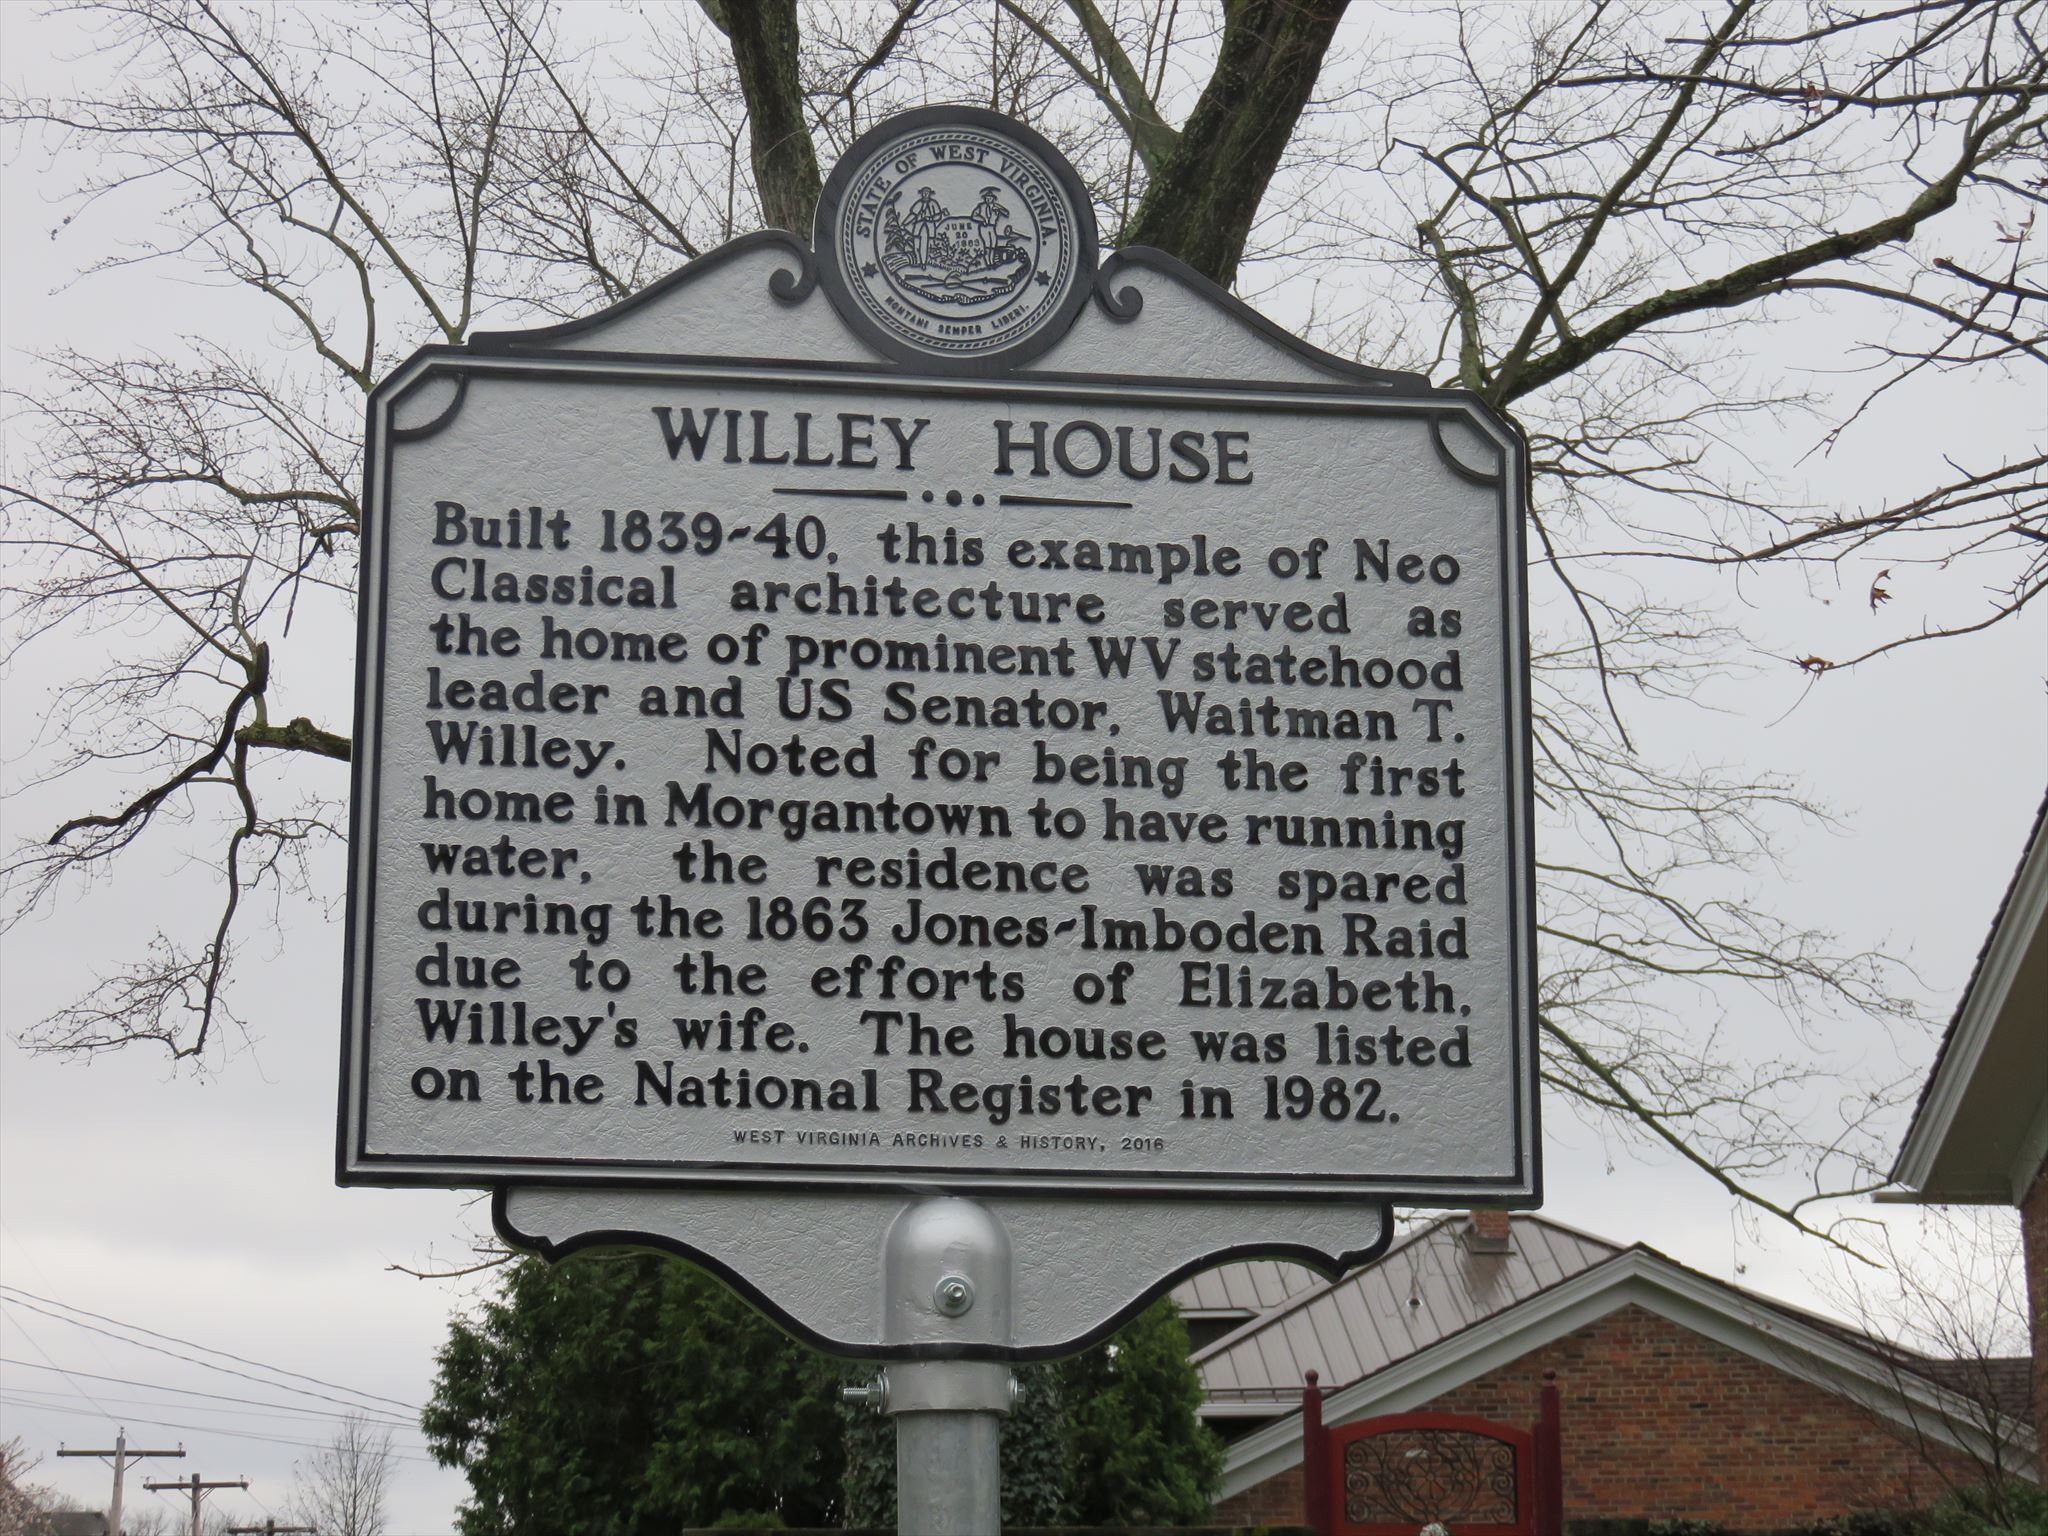 Willey House Historical Marker